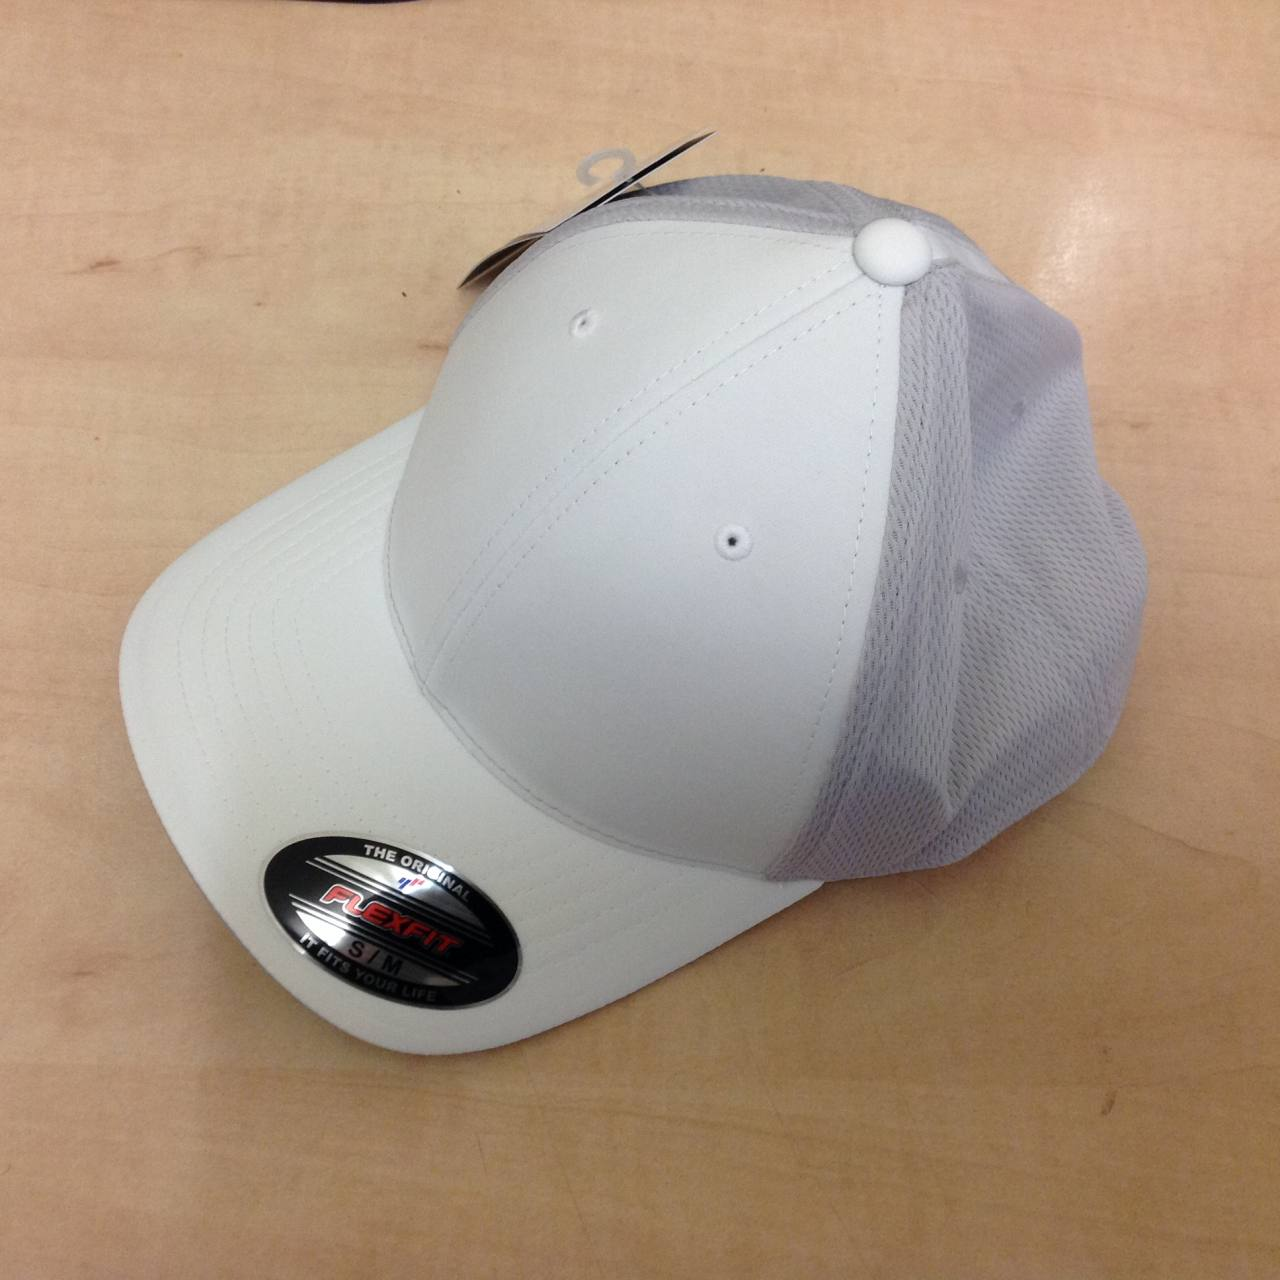 eb09be676 Details about NEW Adidas Climacool Tour Flexfit Golf Cap - White